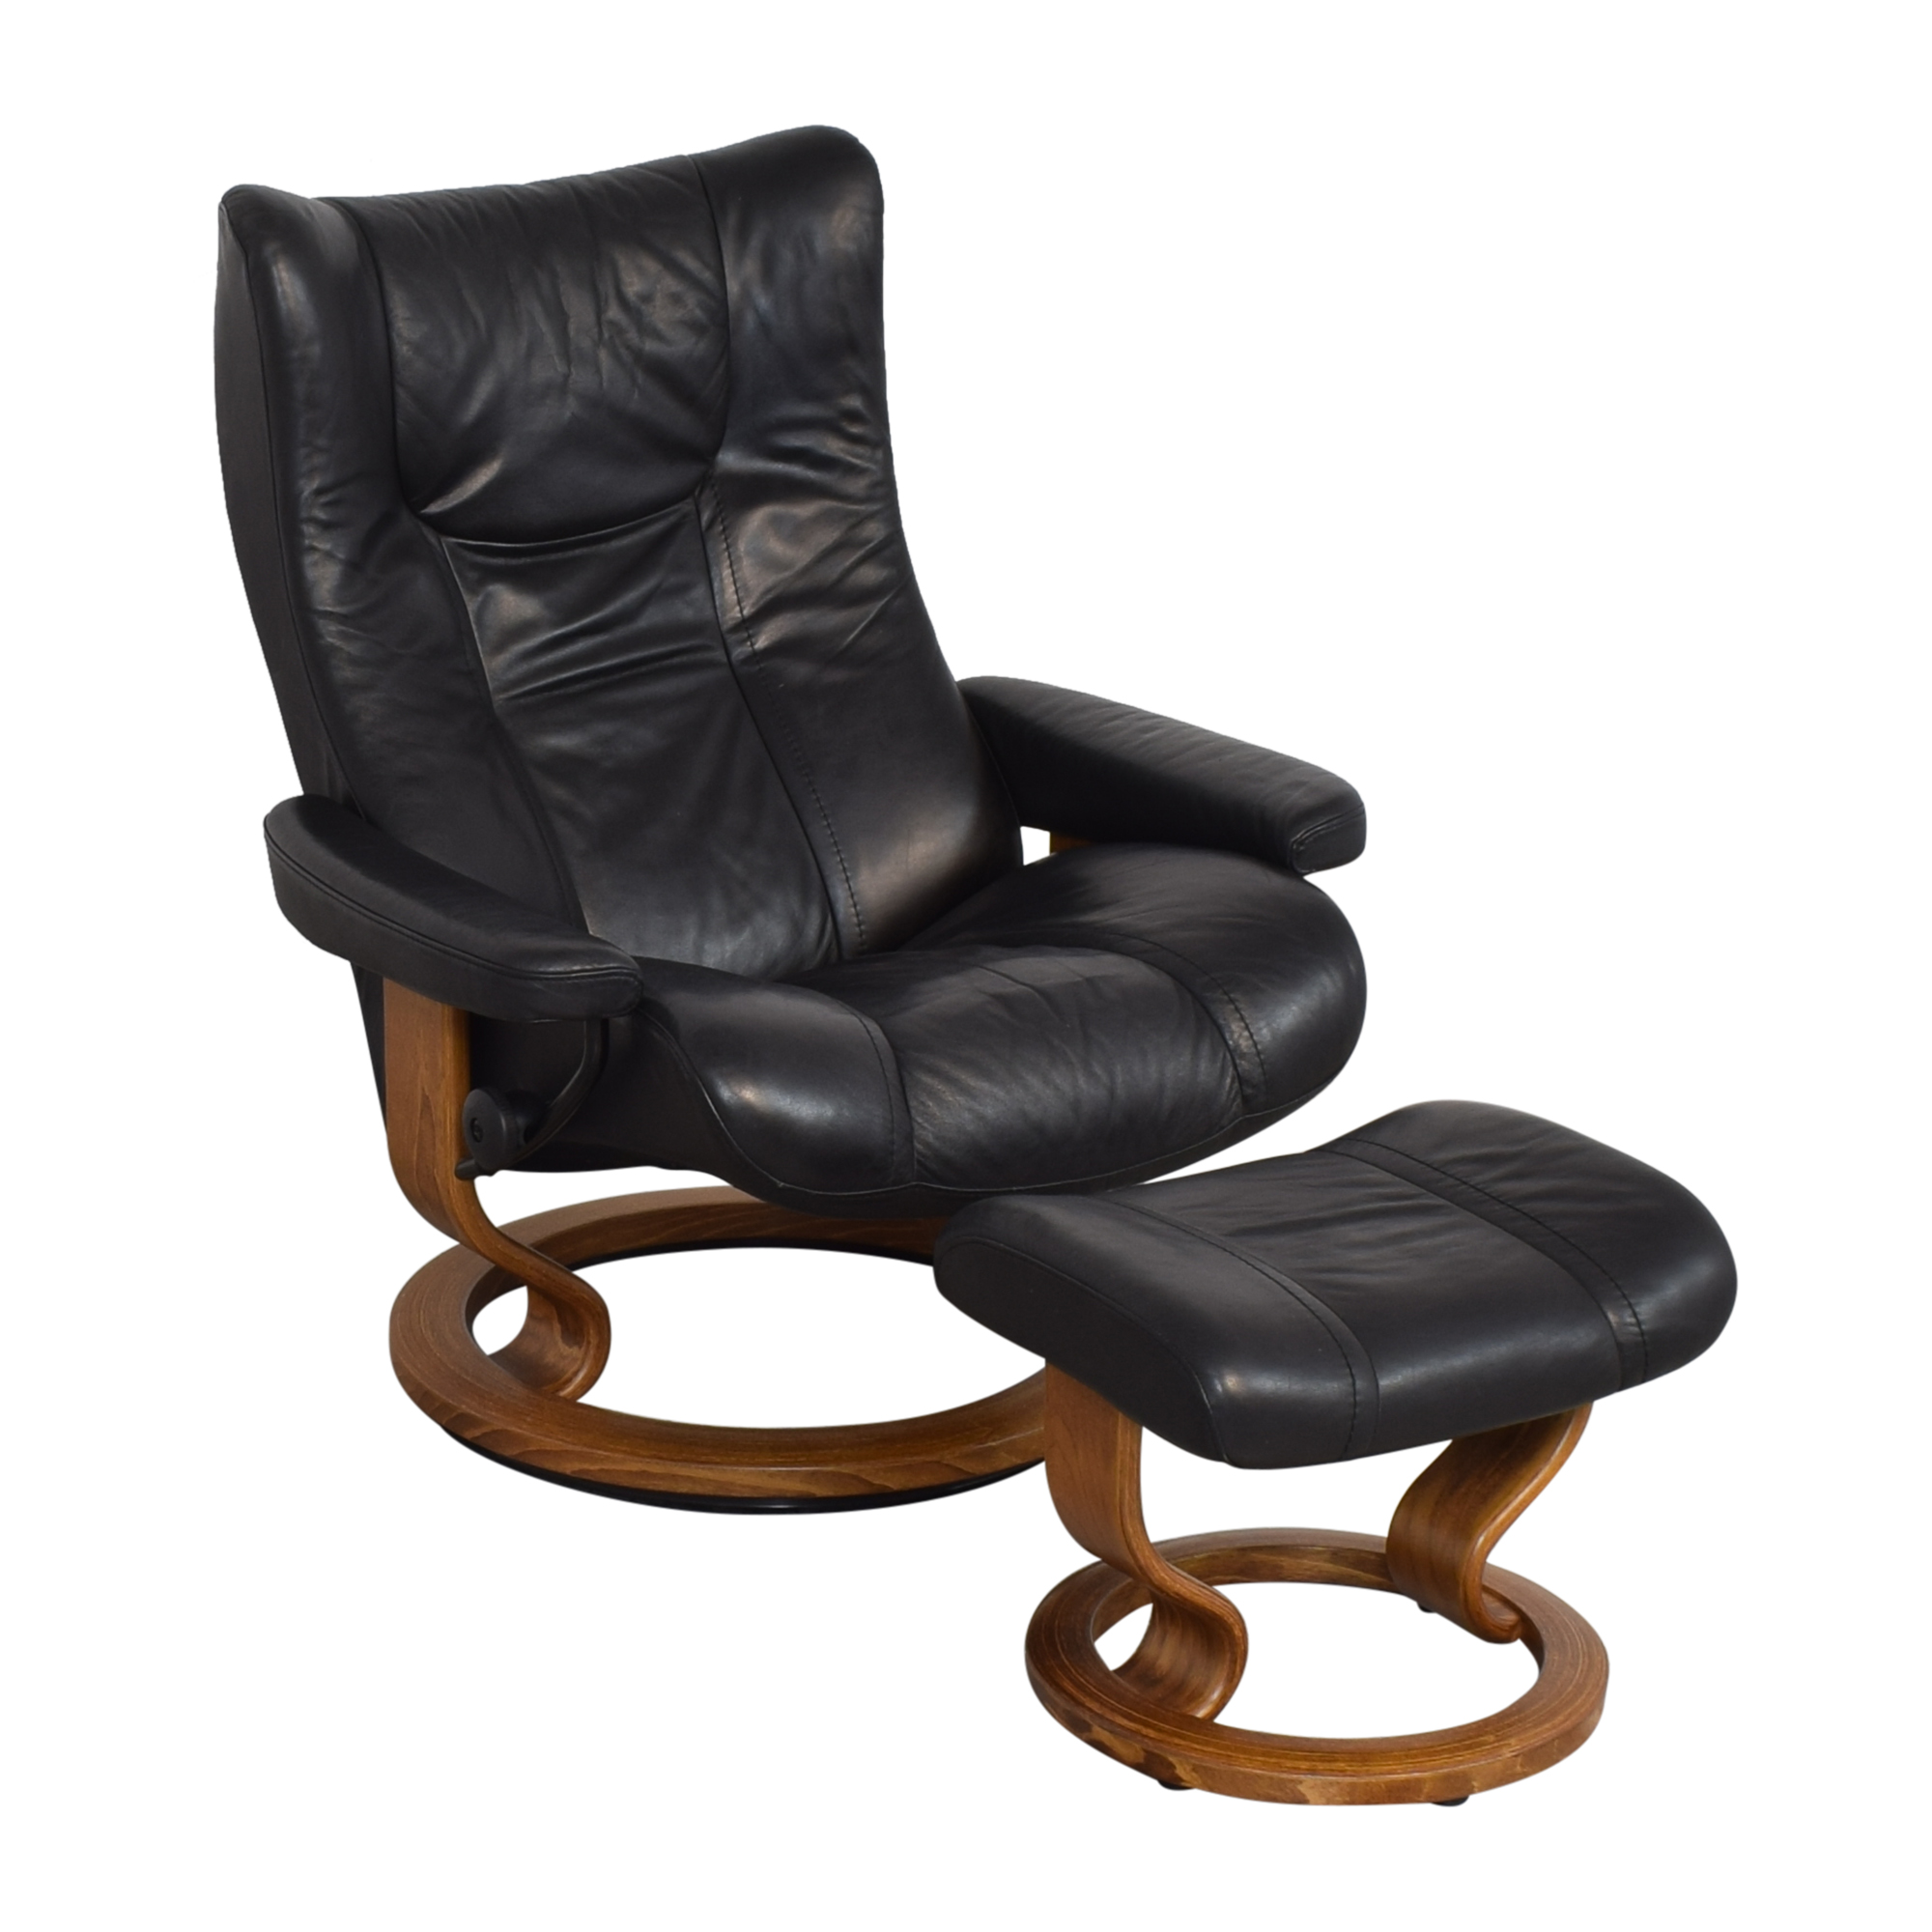 buy Ekornes Stressless Chair with Ottoman Ekornes Chairs